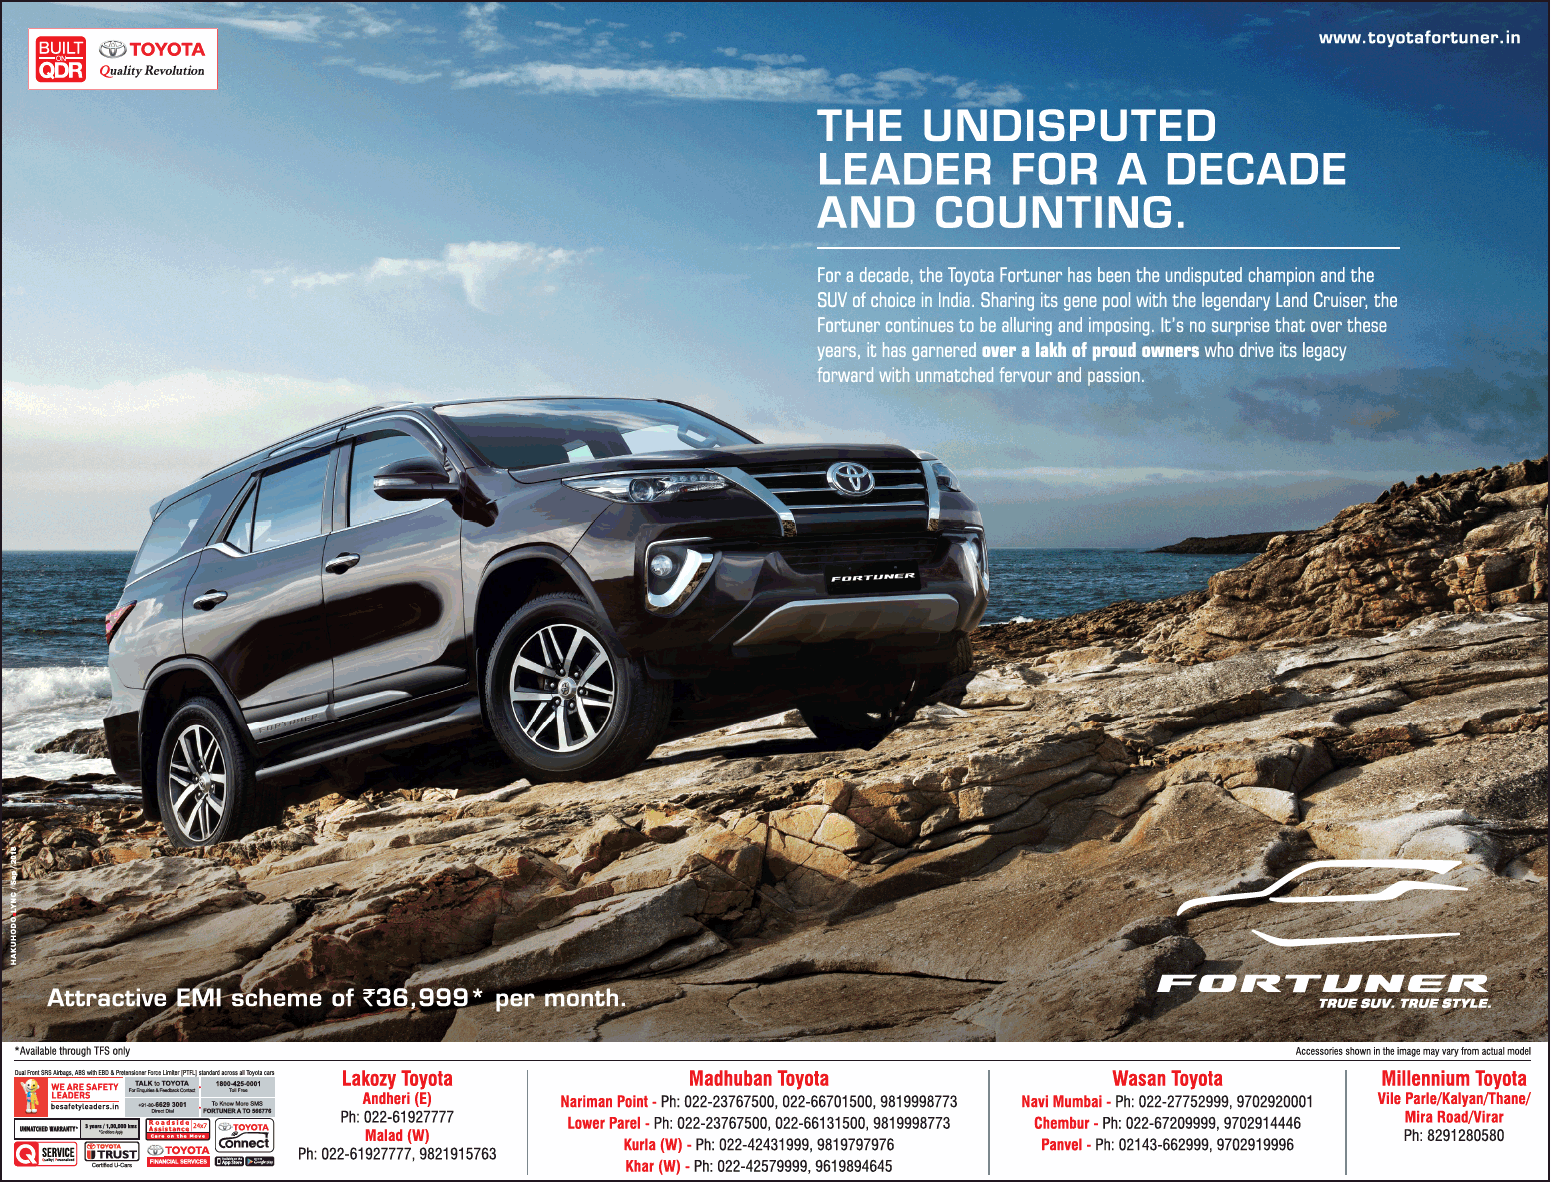 Toyota Fortuner Car The Undisputed Leader Ad Toyota, Car